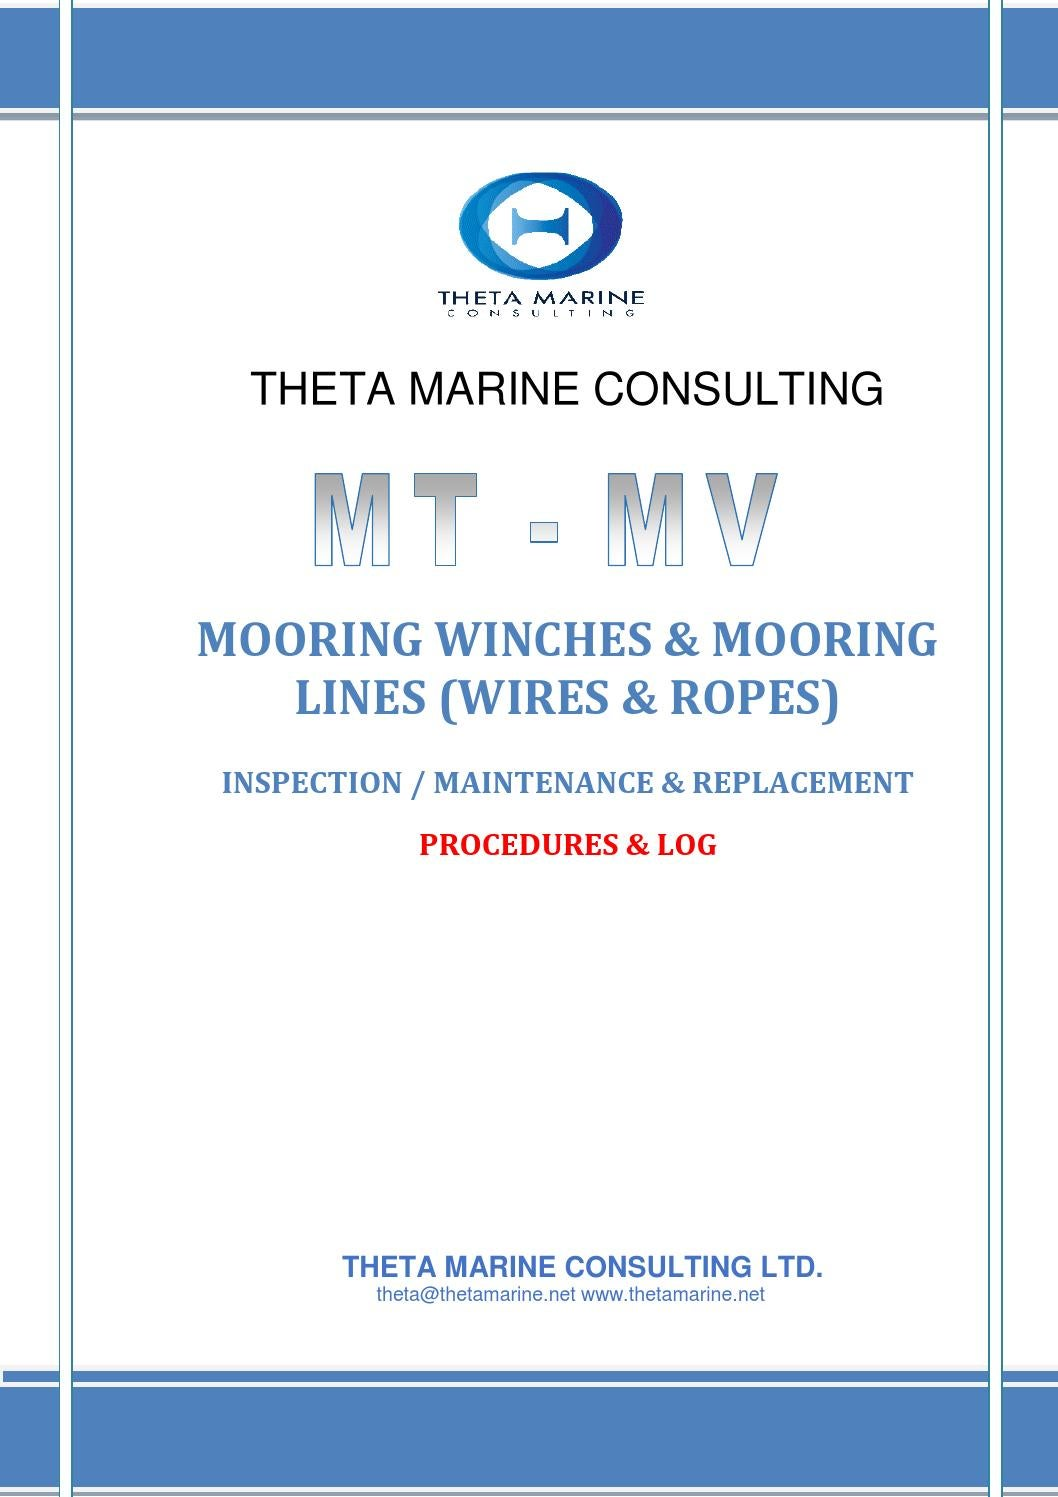 Theta mooring wires ropes manual by Capt. Ioannis Theodorakas - issuu